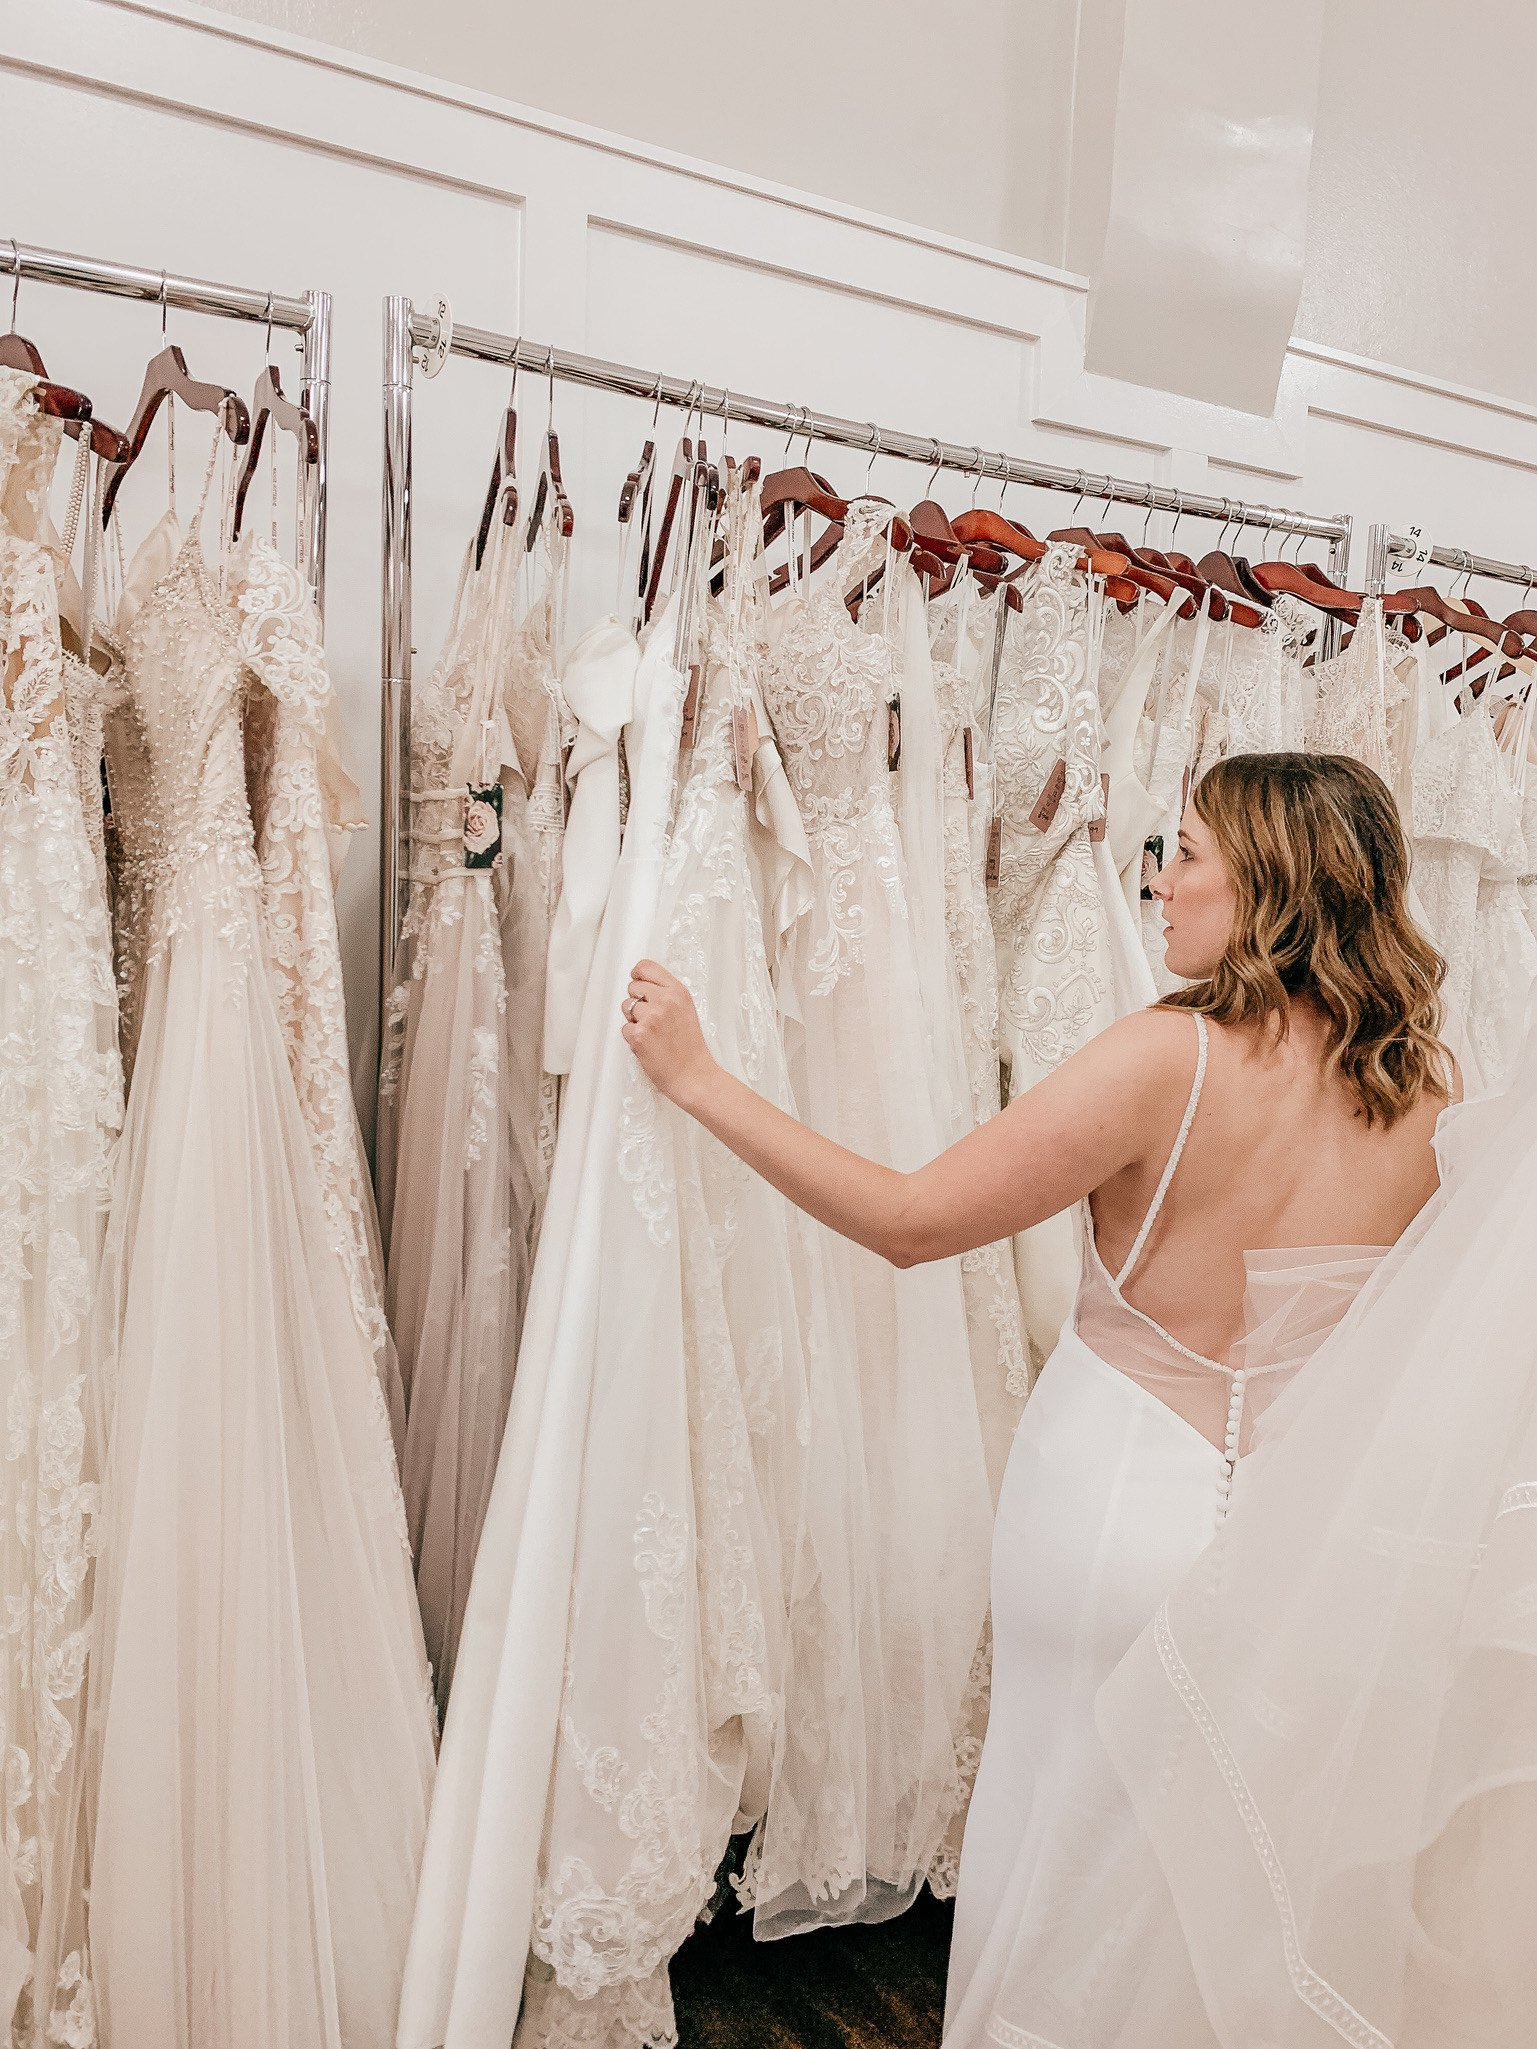 bride looking through wedding dresses to find her dream dress at a sample sale